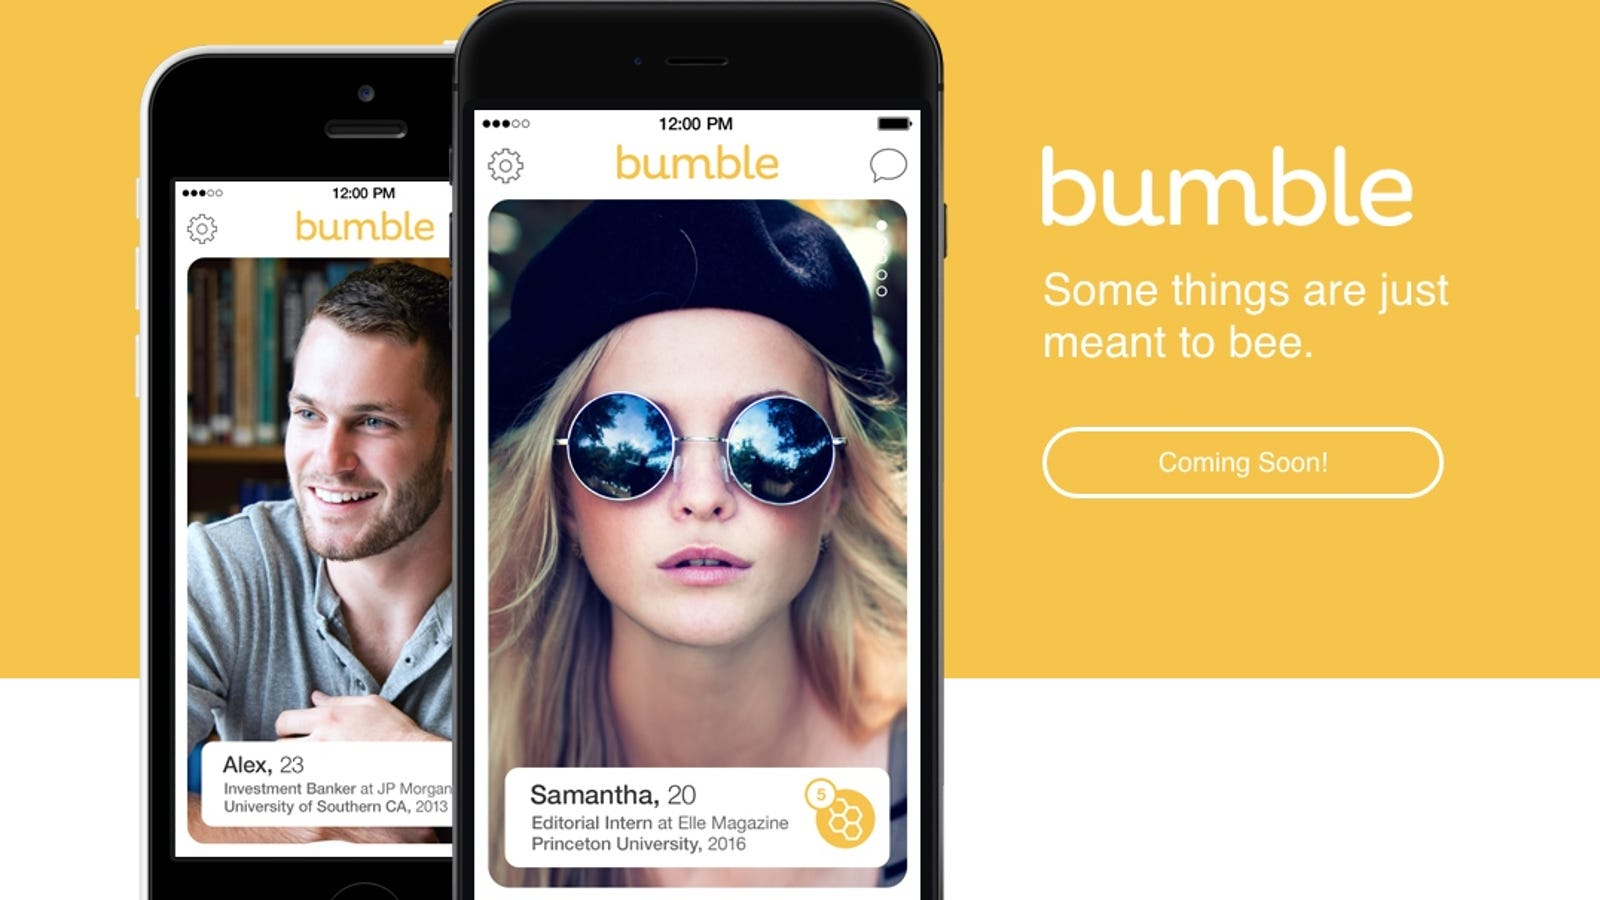 How bumble dating sites work